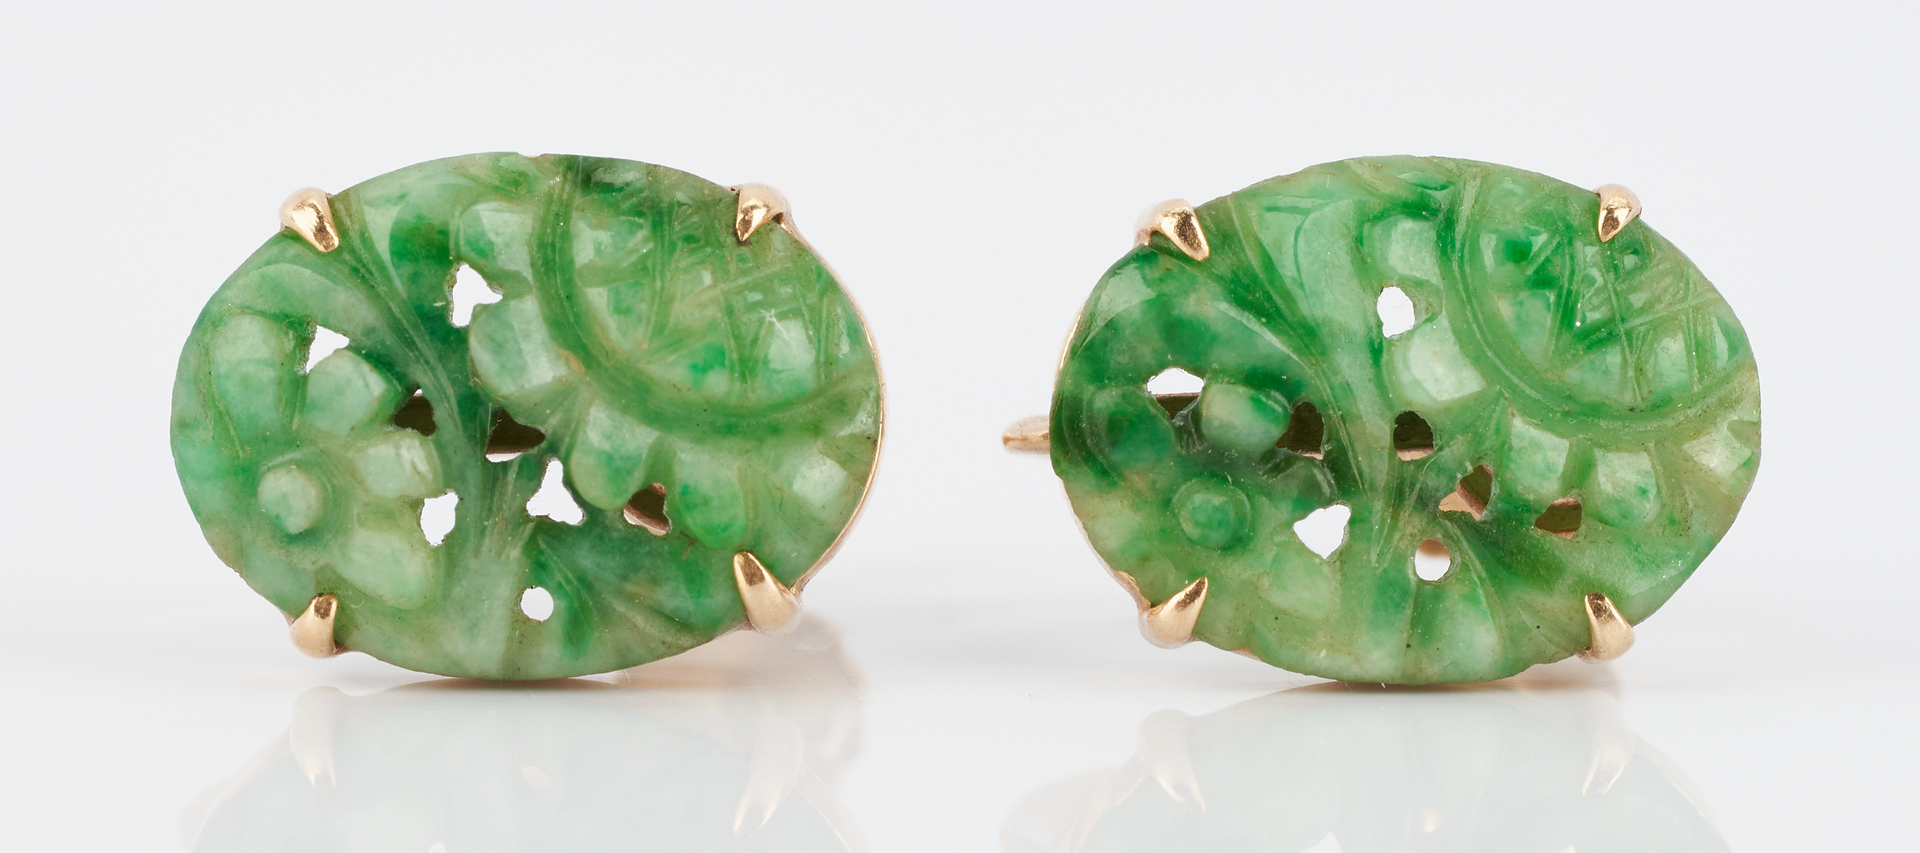 Lot 844: 3 Ladies Jewelry Items, incl. Jade & Aquamarine